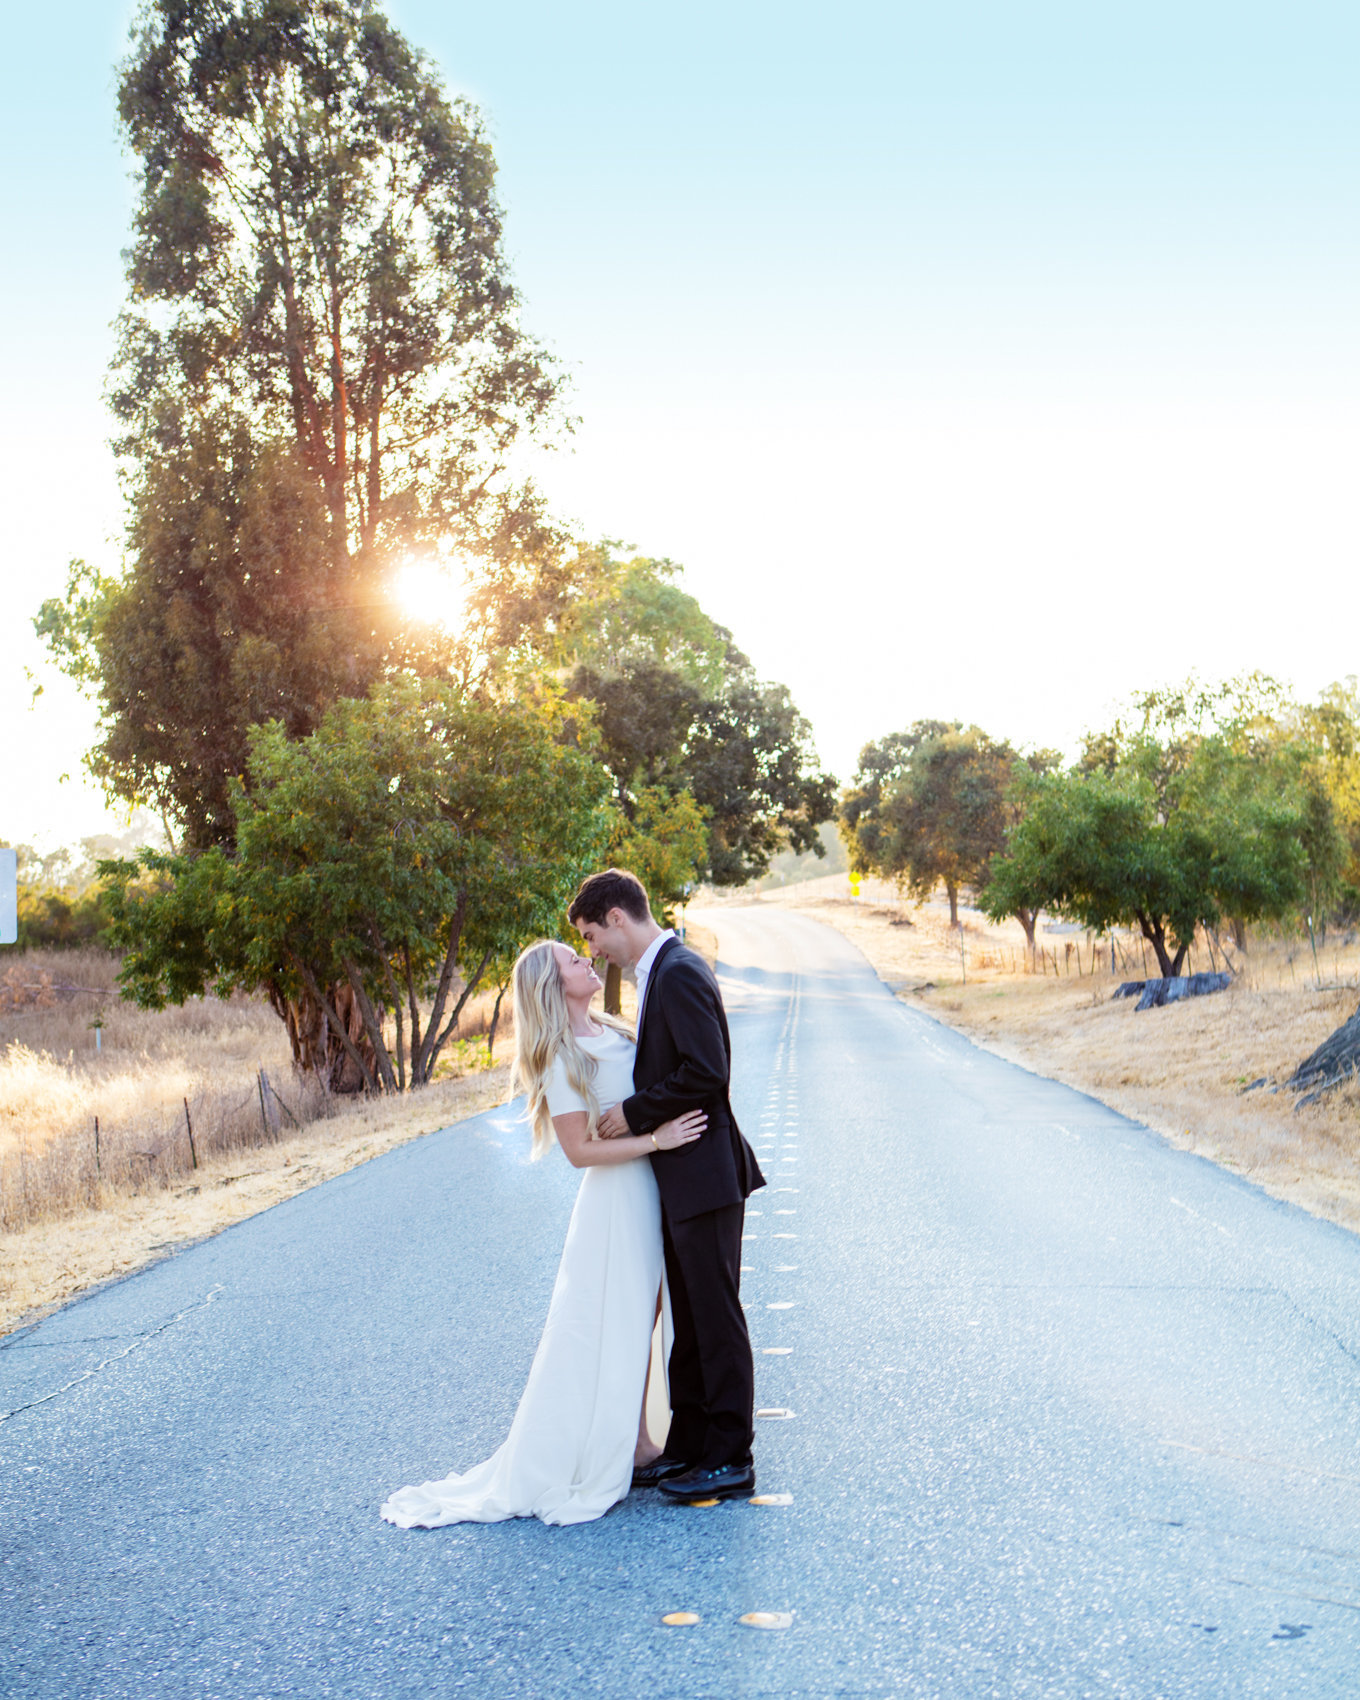 Northern California engagement session, bride and groom stands in street with golden hour lighting